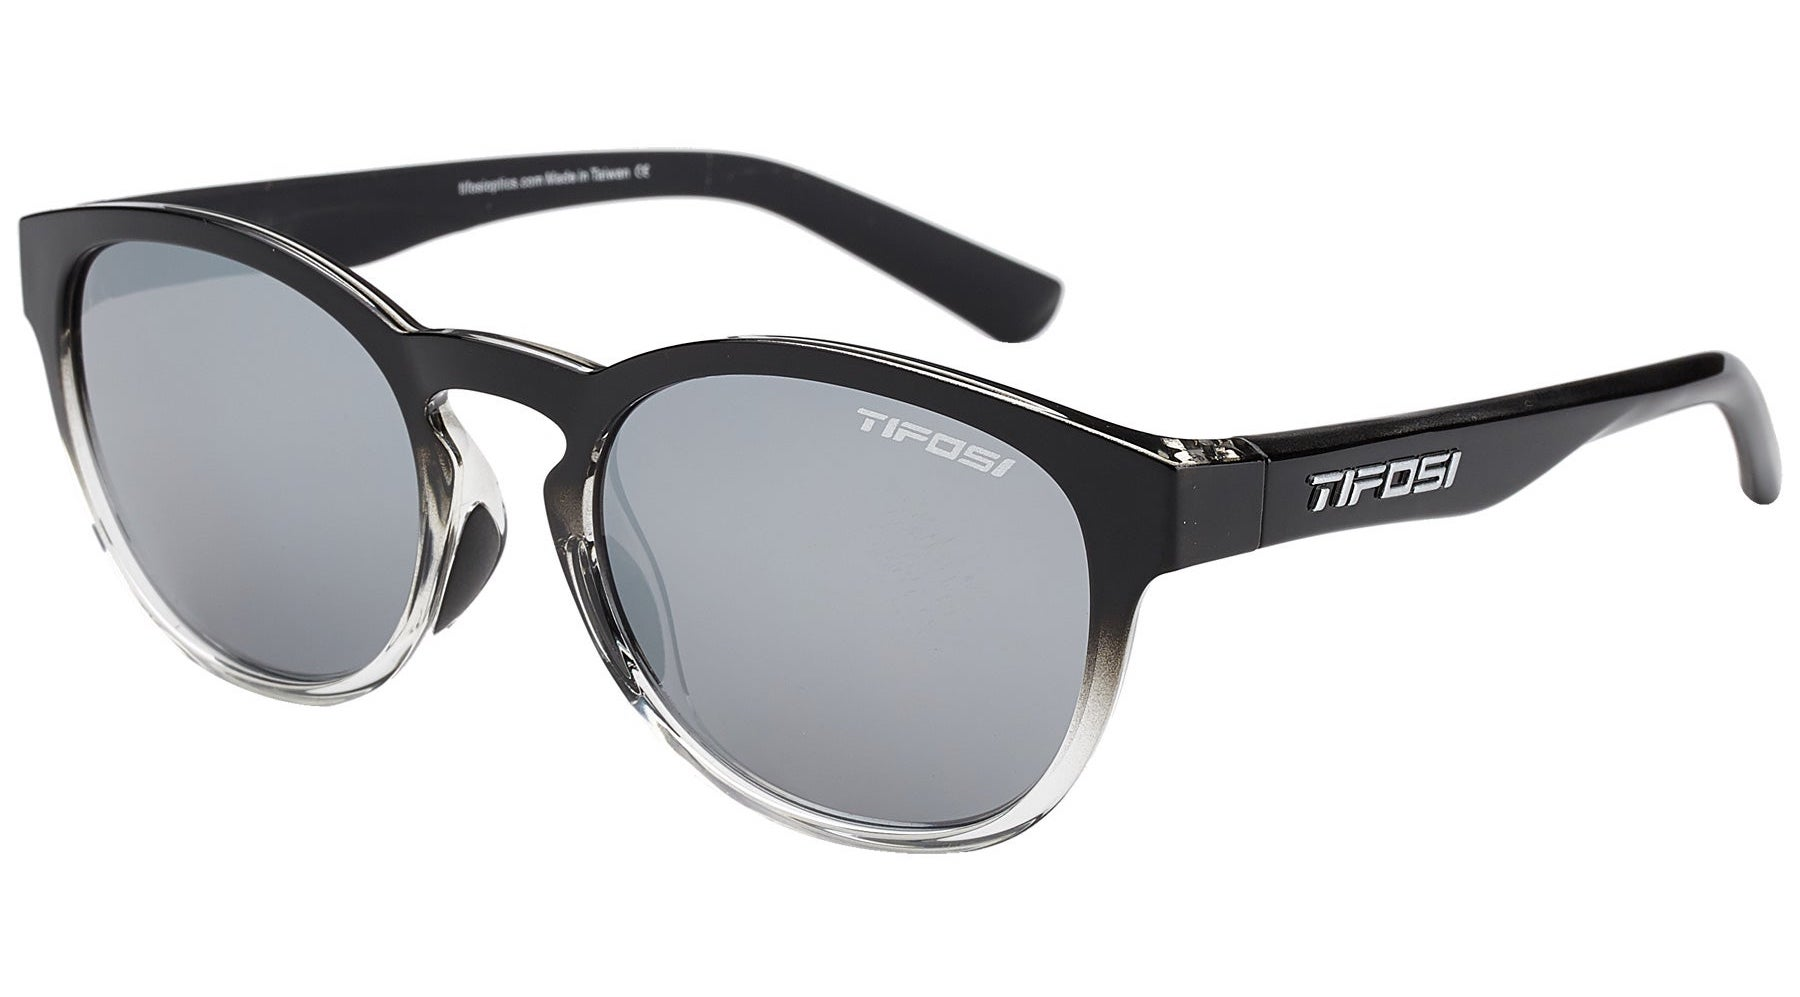 tifosi svago sunglasses - 2019 holiday gift guide